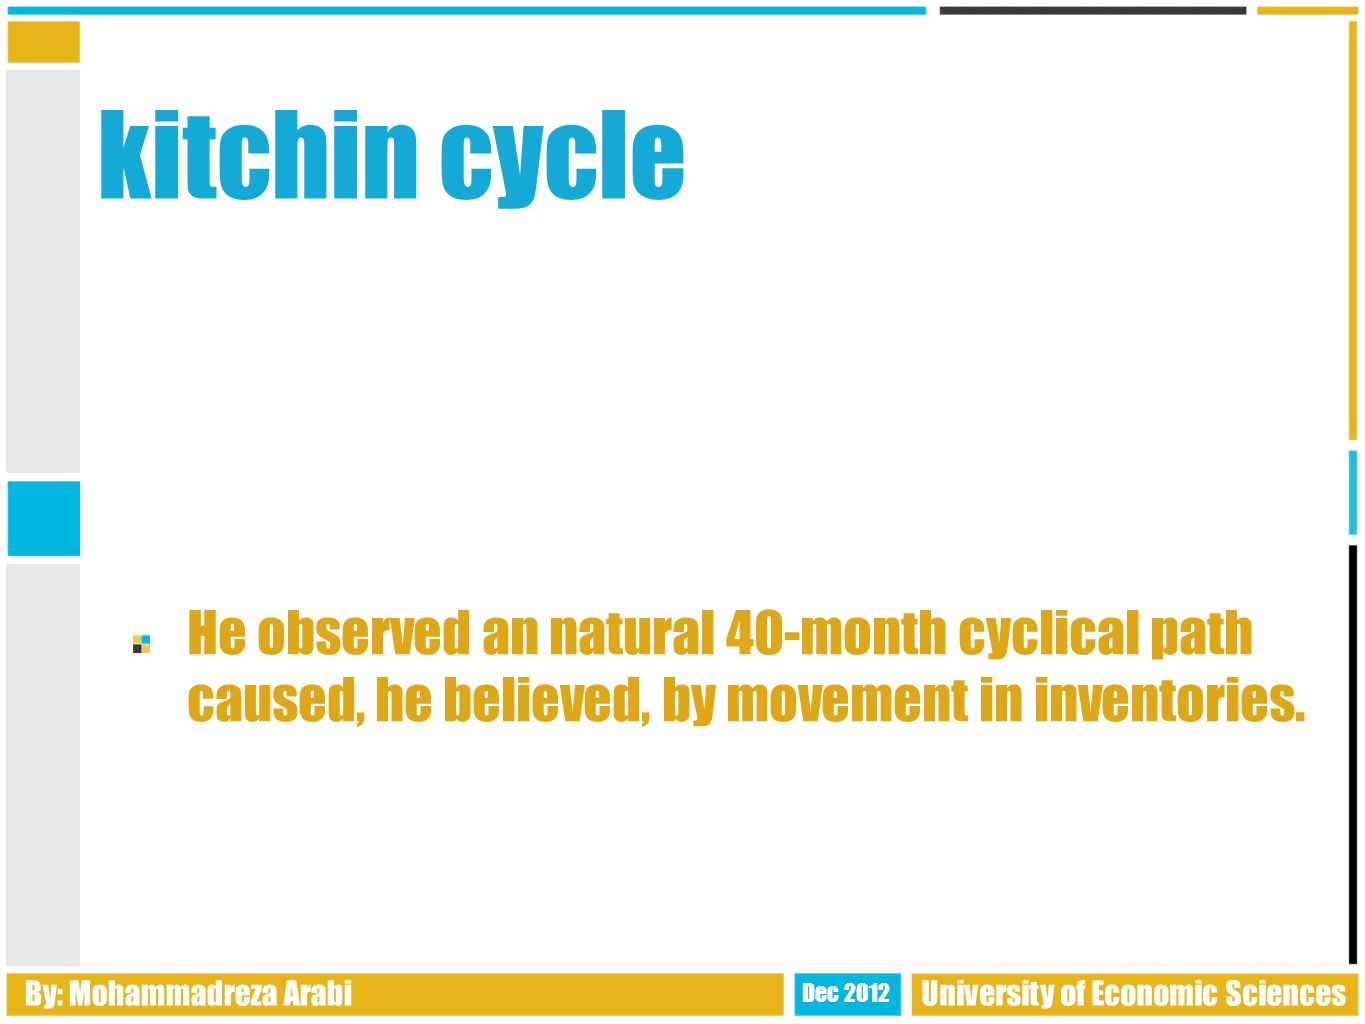 kitchin cycle He observed an natural 40-month cyclical path caused, he believed, by movement in inventories.